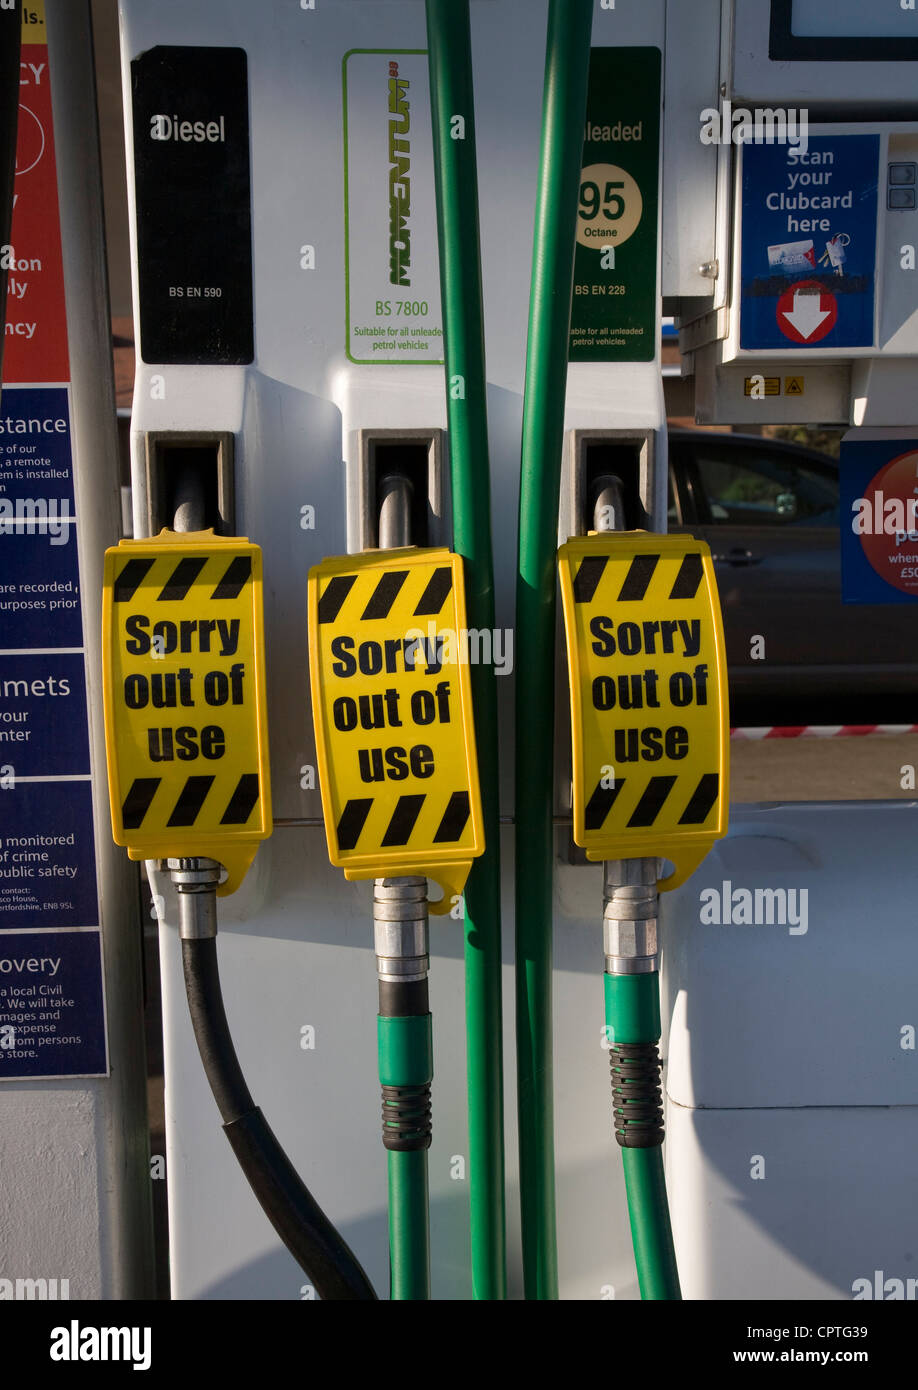 Petrol pumps out of use UK - Stock Image